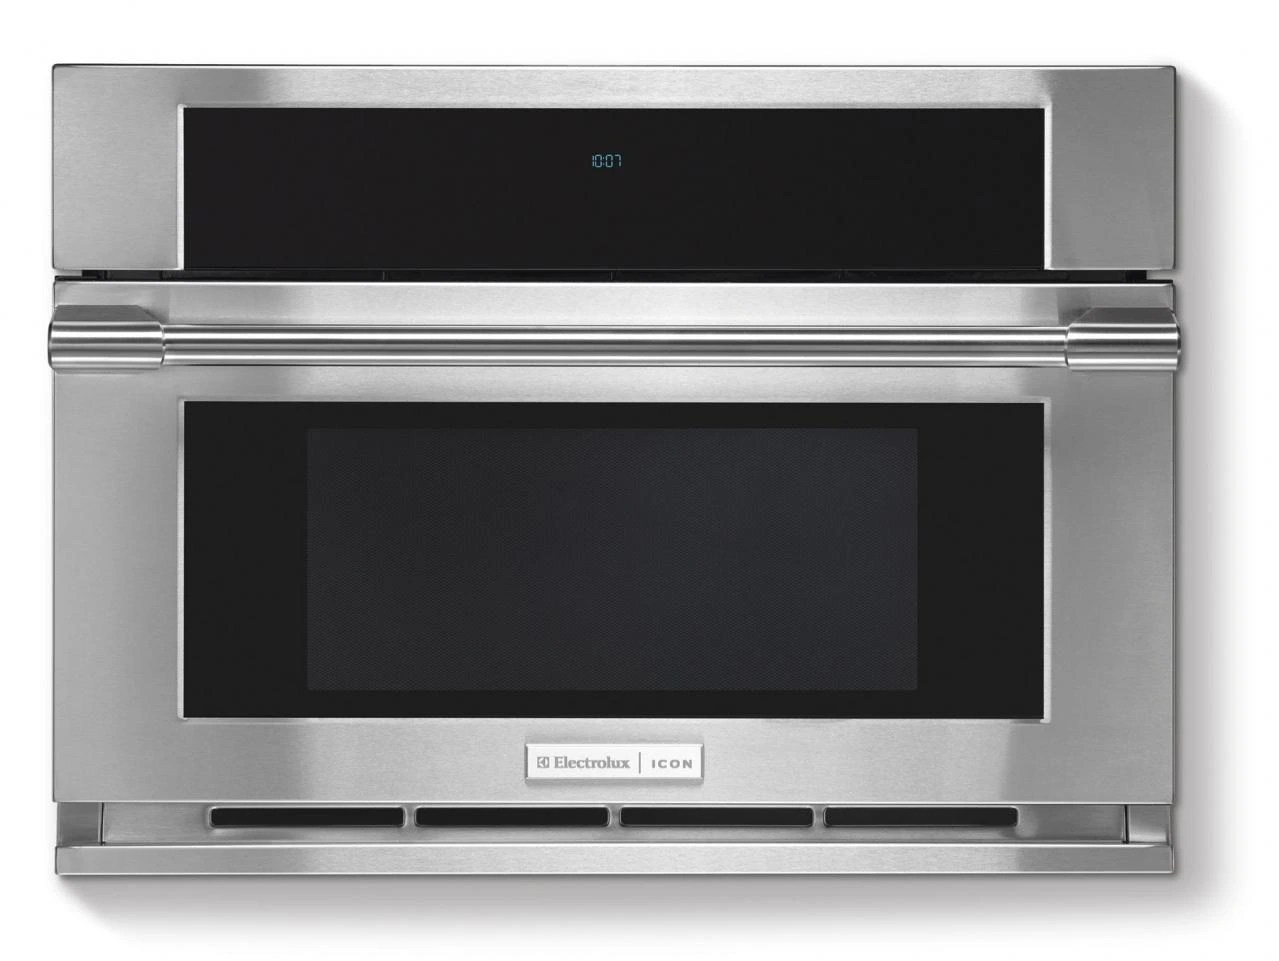 hight resolution of electrolux icon professional series 1 5 cu ft stainless steel built in microwave e30mo75hps grand appliance and tv